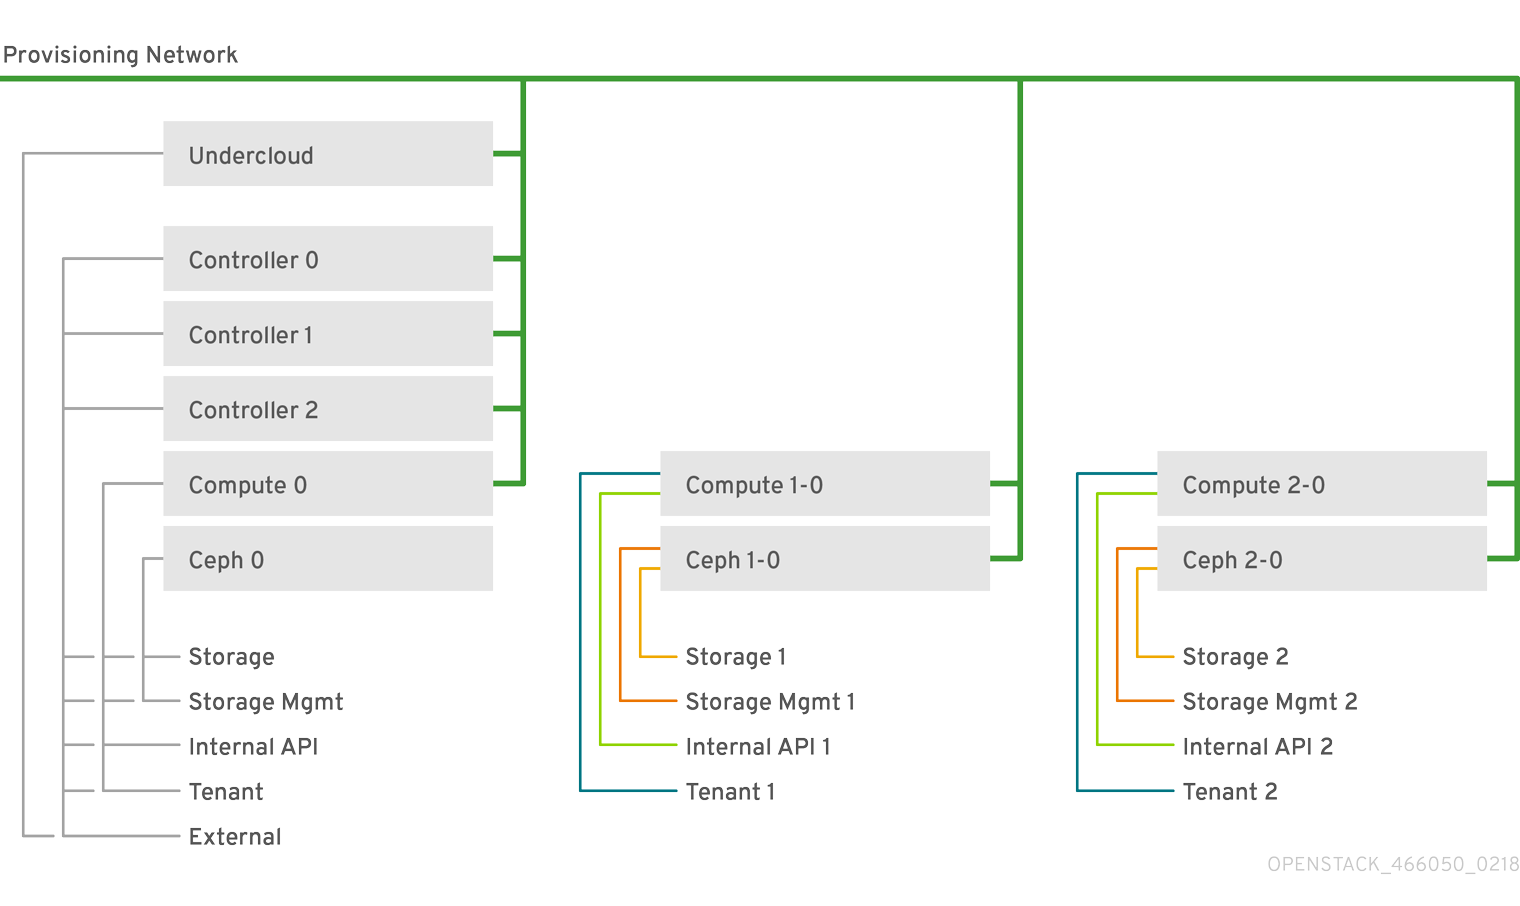 OpenStack Spine Leaf 466050 0218 API network